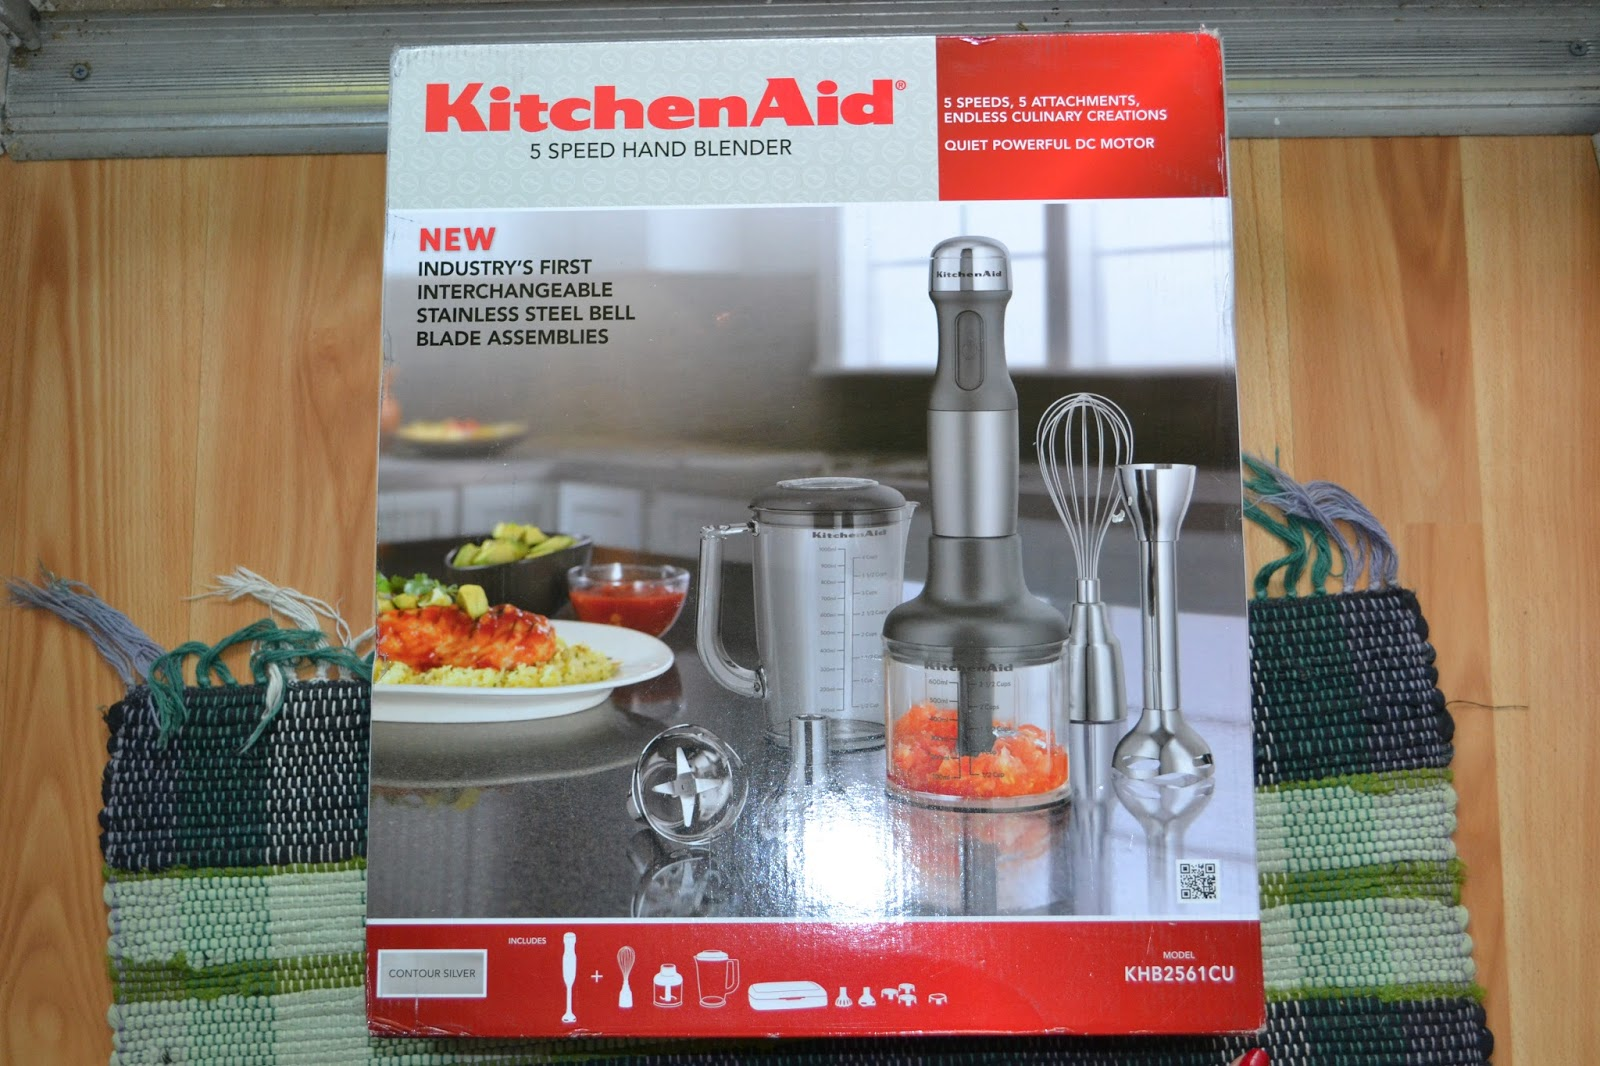 Kitchenaid 5 Speed Hand Mixer Baked Rotini With Tomatillo Tomato Sauce A Review Of Kitchen Aid